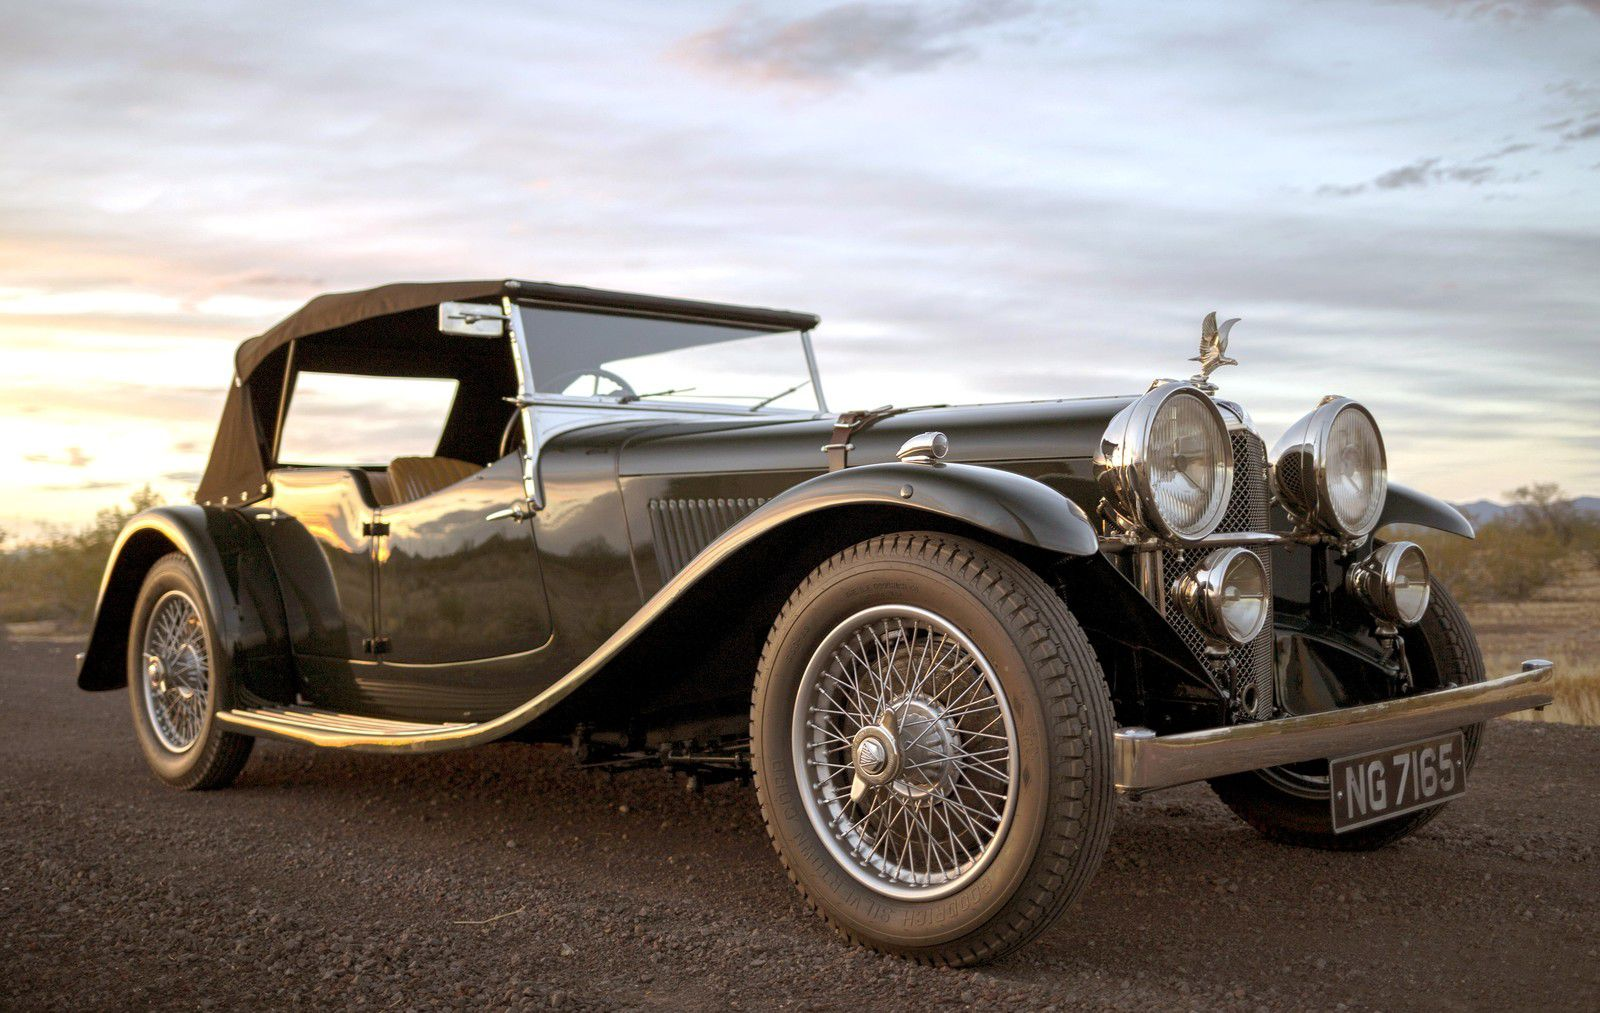 "VOITURES DE LEGENDE (1156) : ALVIS  SPEED 20 ""SB"" CROSS & ELLIS TOURER - 1933"